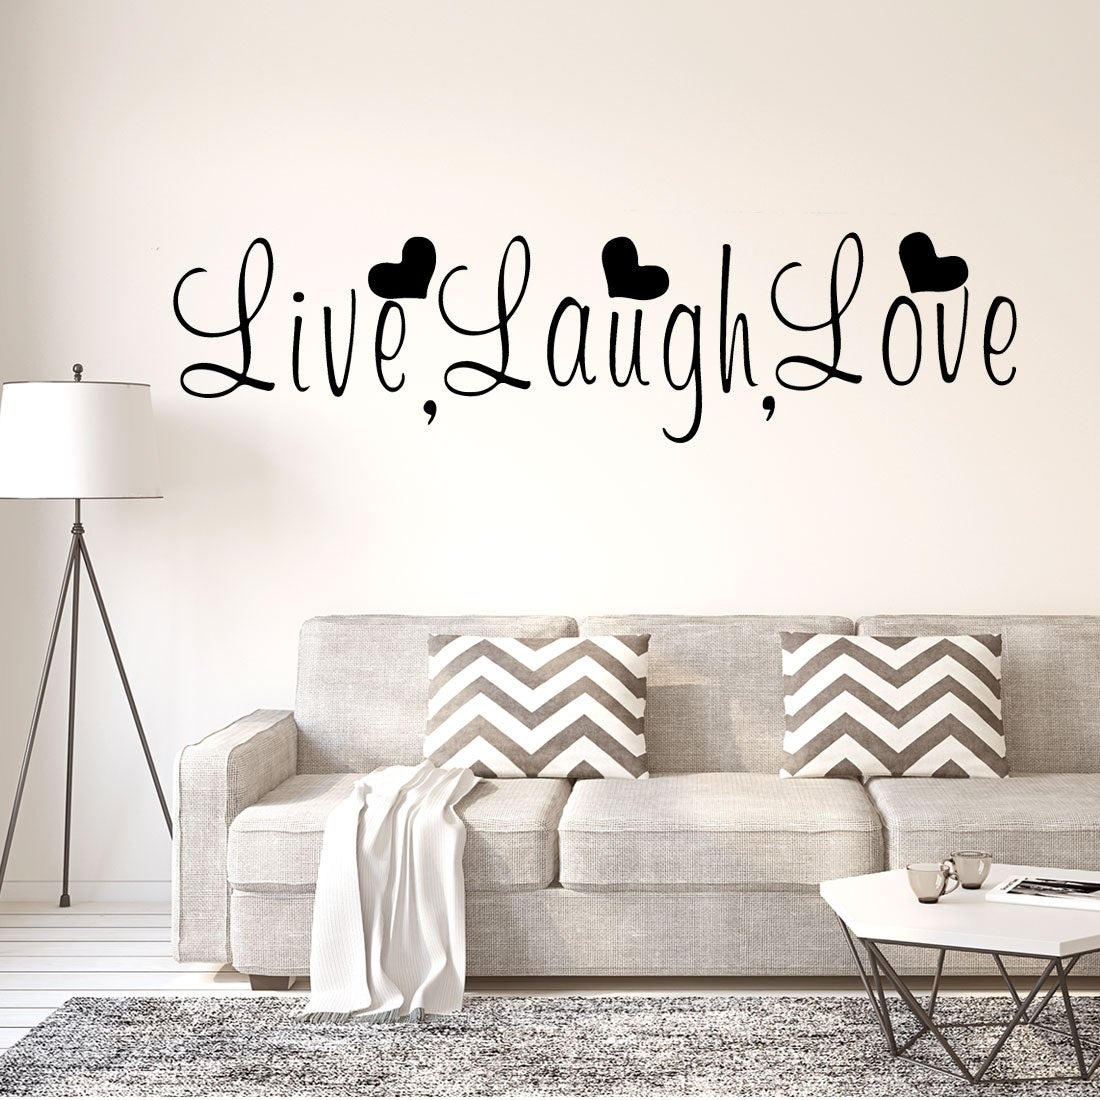 Live Laugh Love Wall Art Sticker Quote Decor Decal Vinyl Lounge Kitchen Room Bed